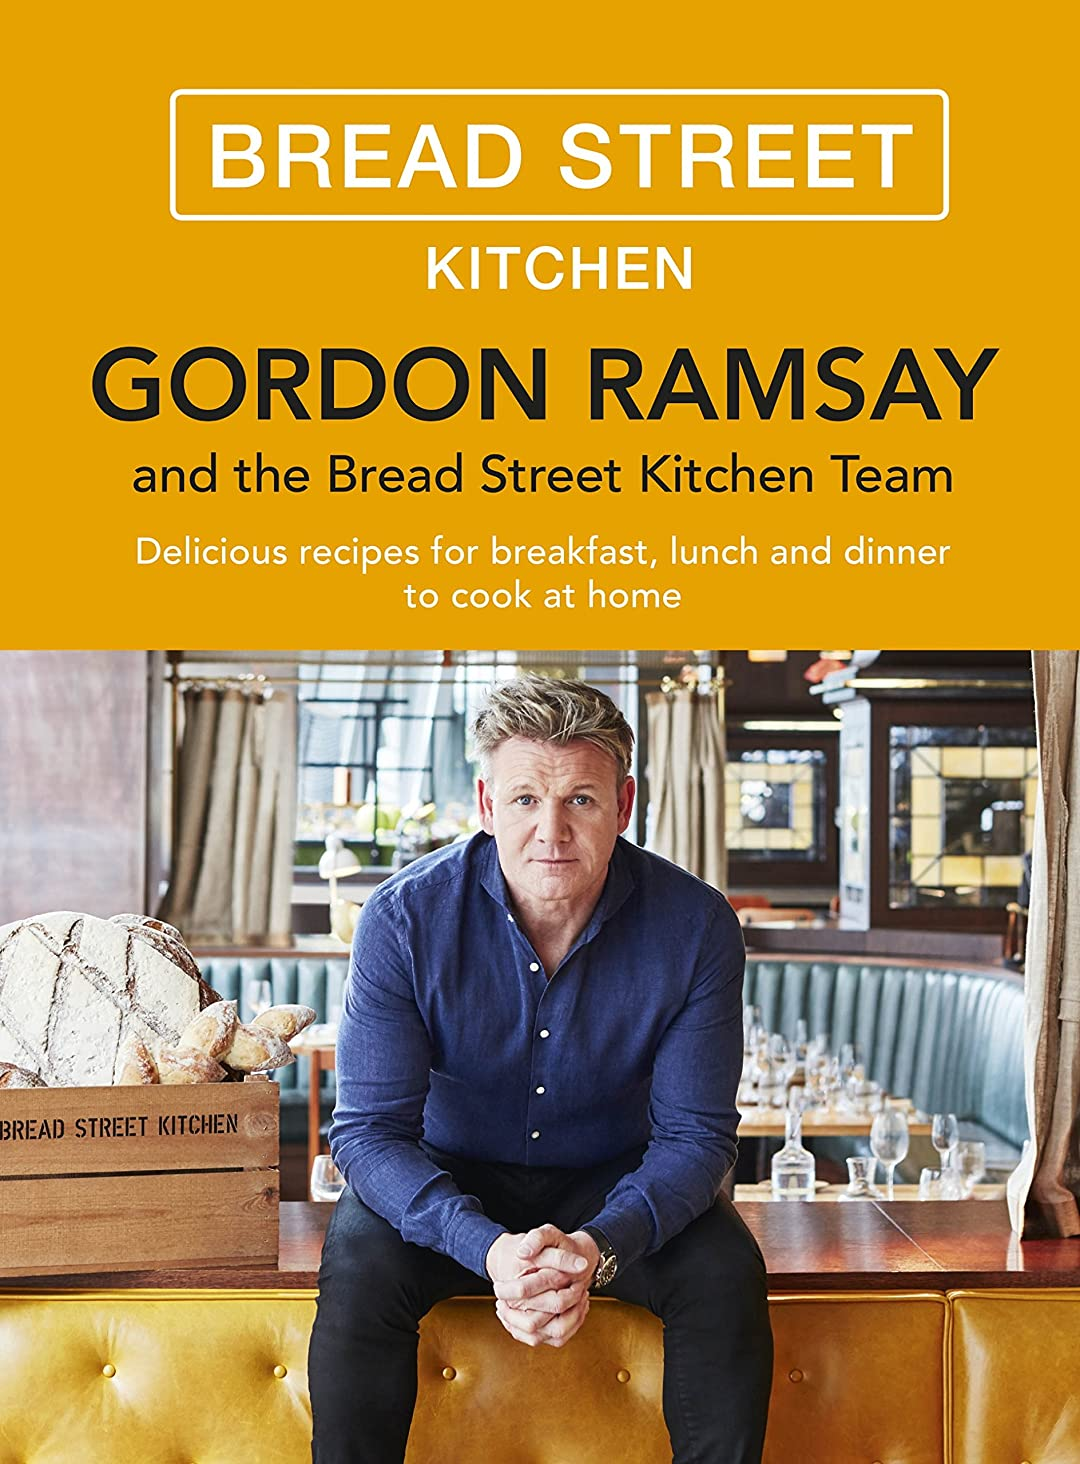 ジャンルオフセット思われるGordon Ramsay Bread Street Kitchen: Delicious recipes for breakfast, lunch and dinner to cook at home (English Edition)